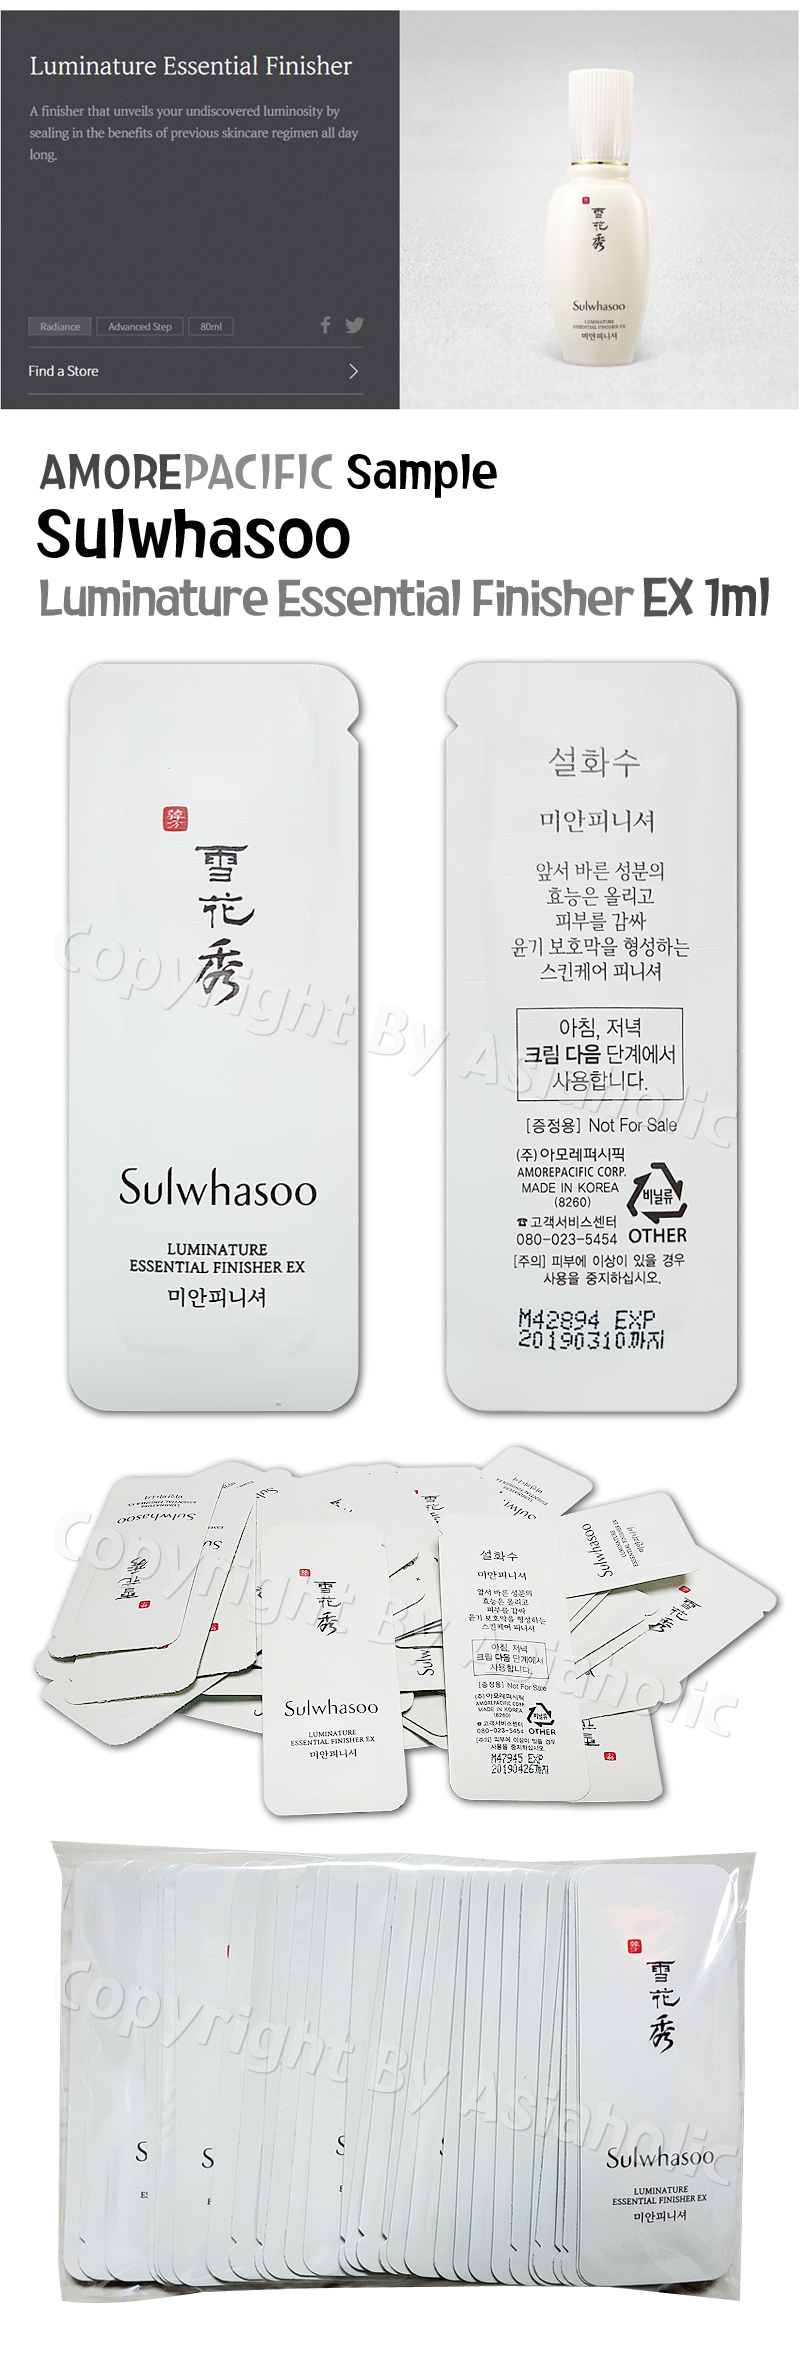 how to use sulwhasoo luminature essential finisher